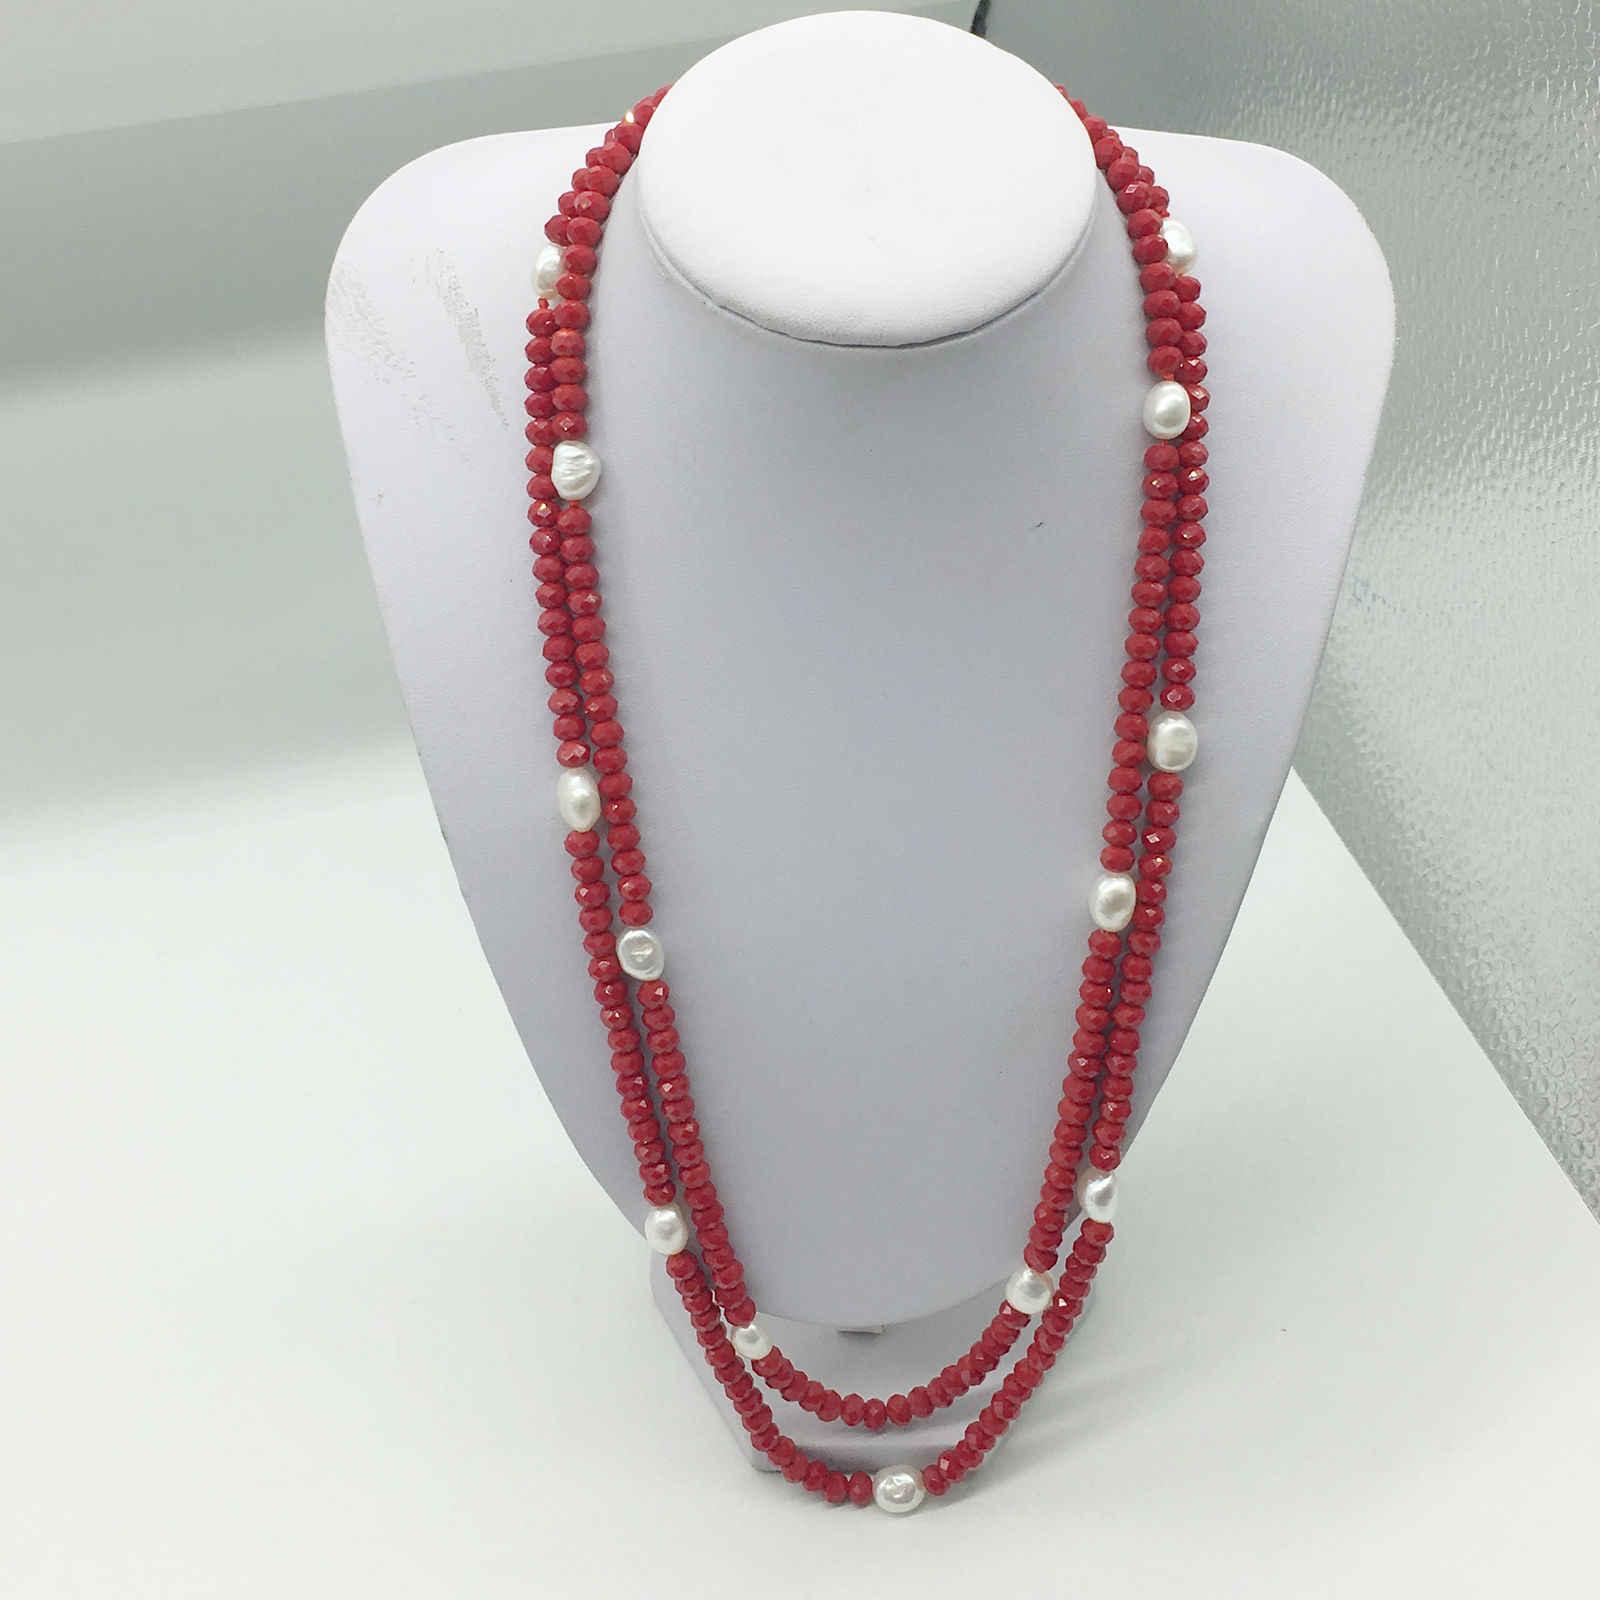 LJHMYStrand Red Crystal Beaded White Freshwater Pearl Long Wrap NecklaceWrap Necklaces Women Fashion Jewelry